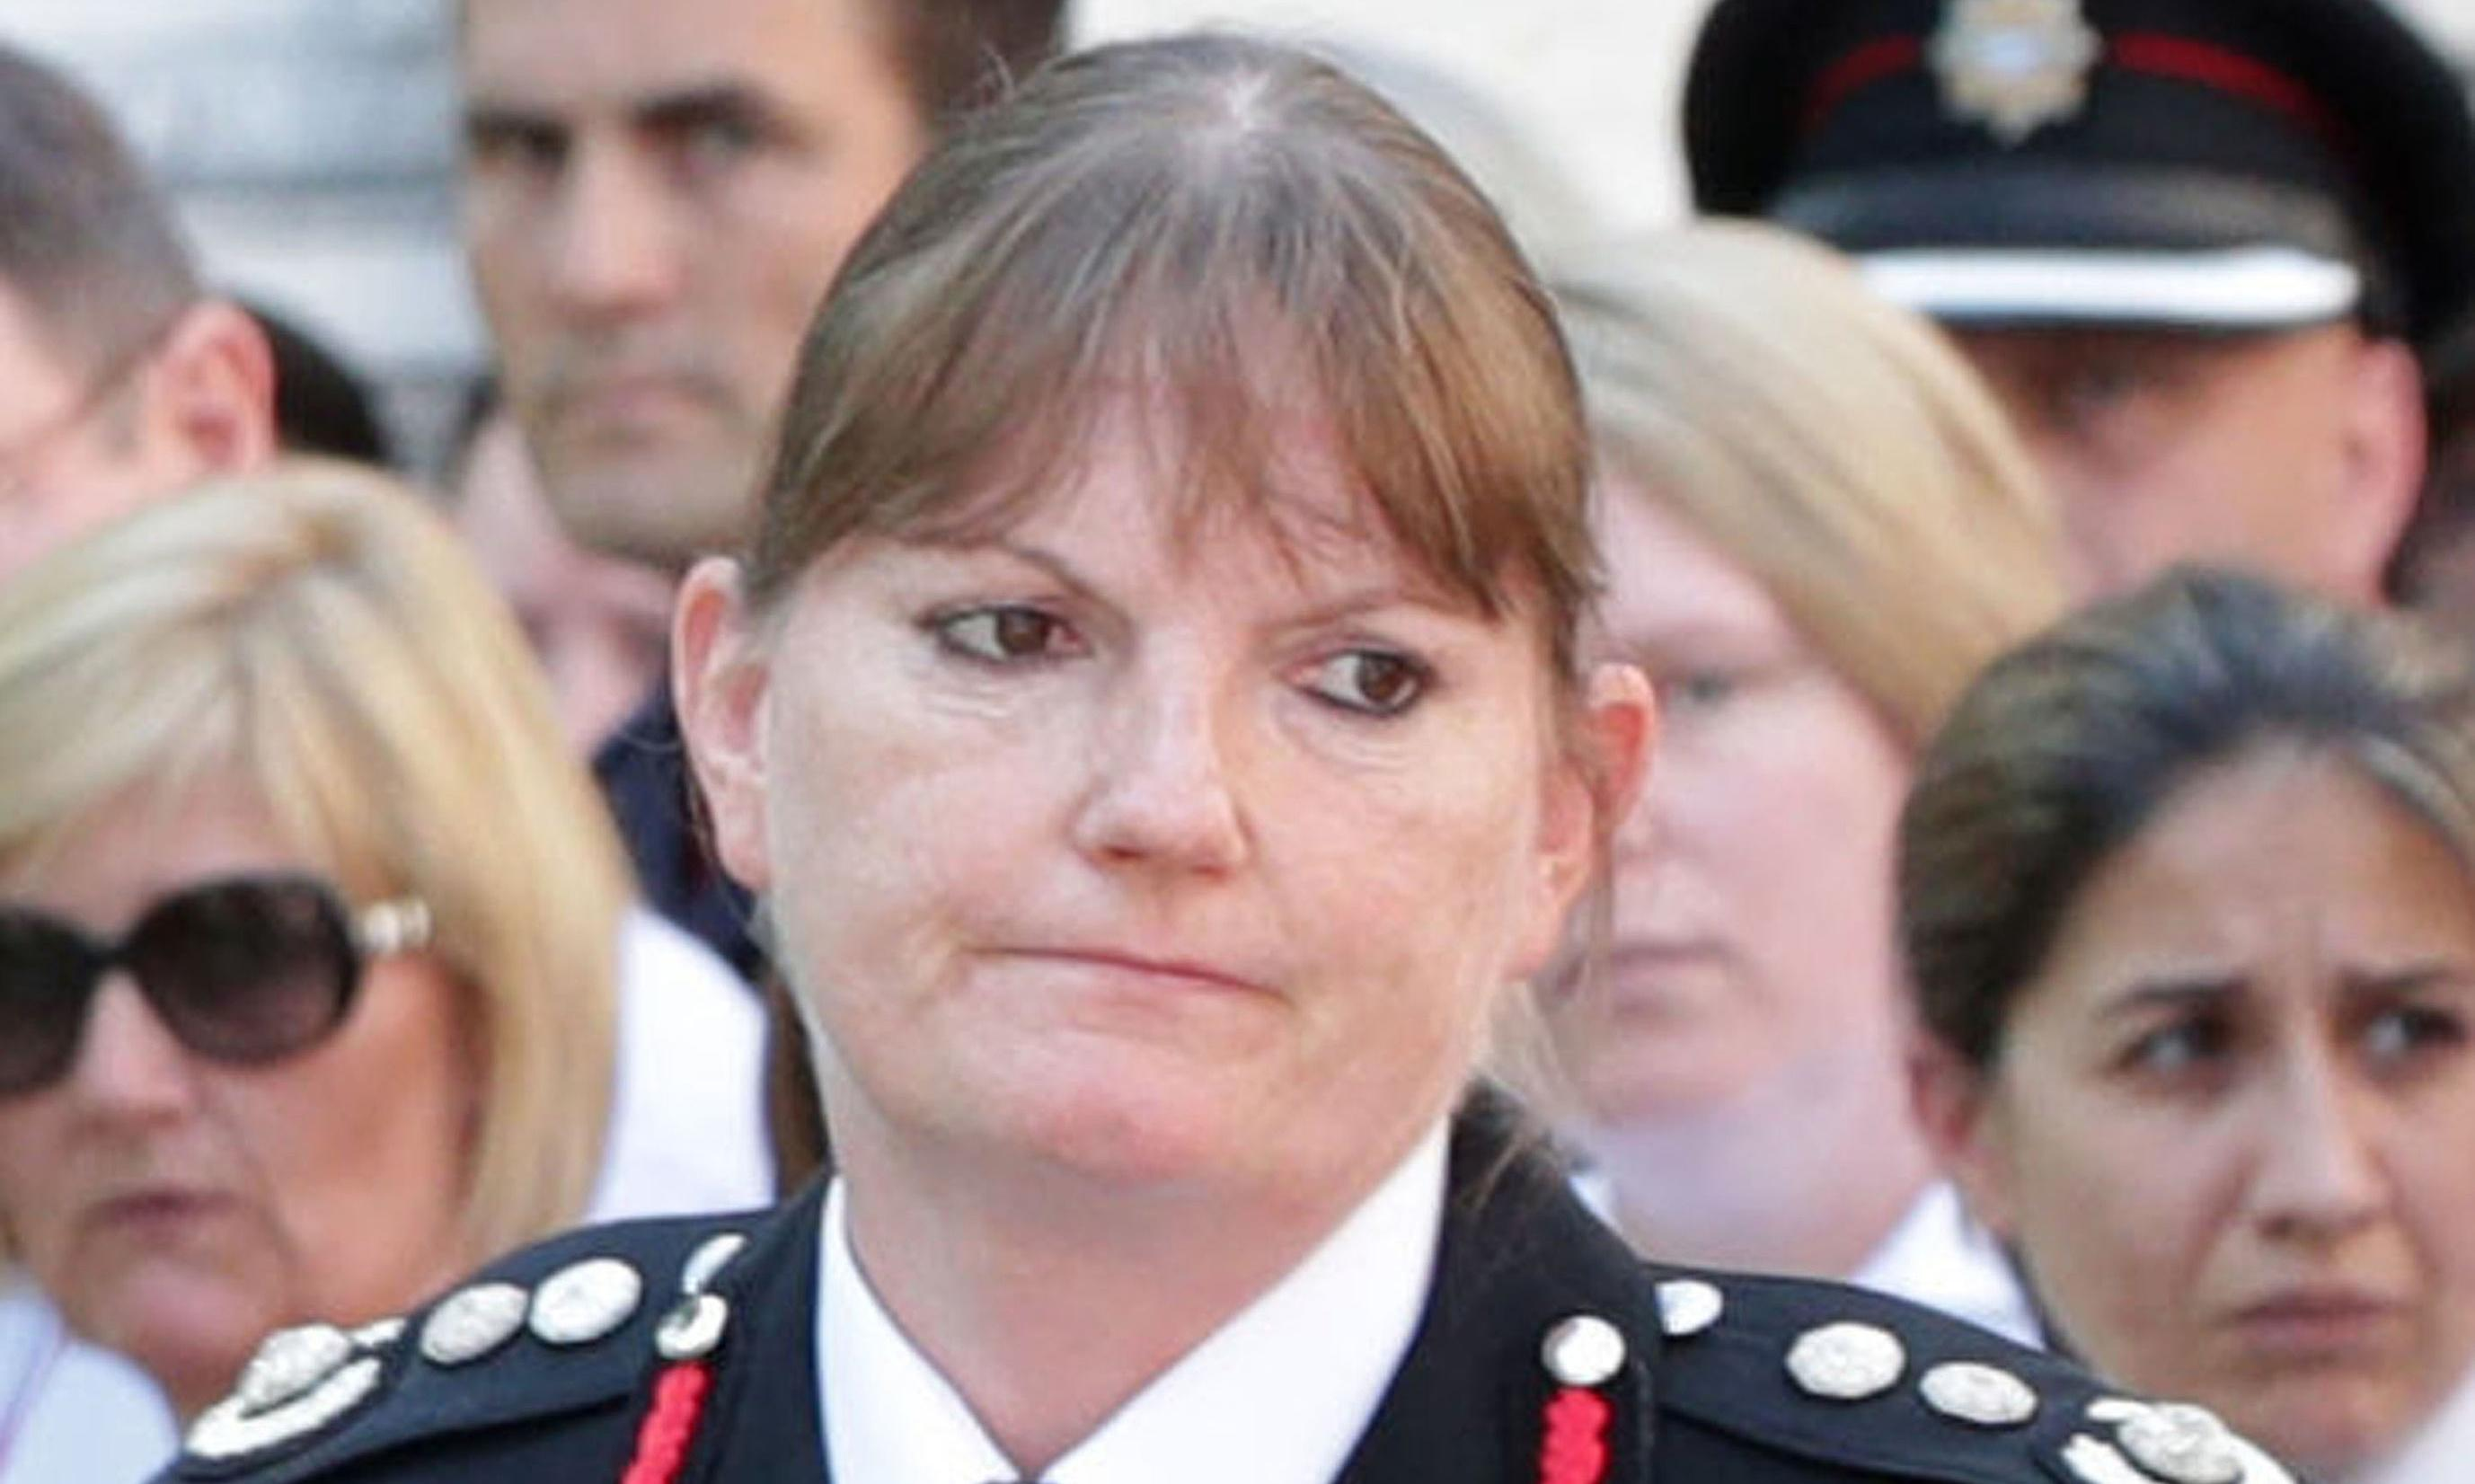 London fire chief Dany Cotton resigns after Grenfell criticism